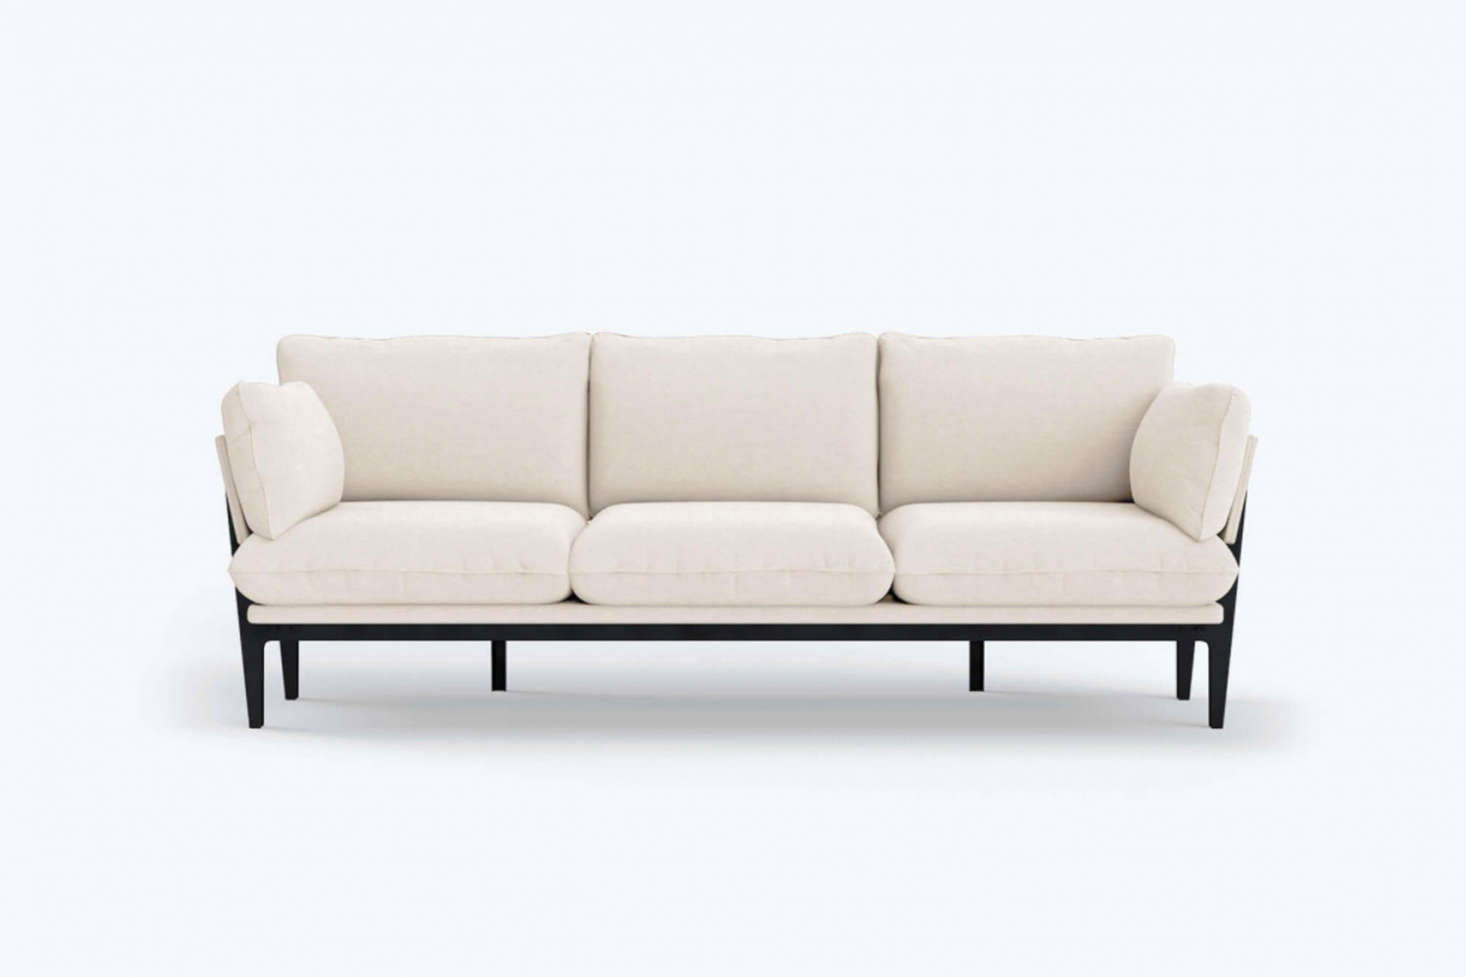 From start-up Floyd, the Sofa in &#8